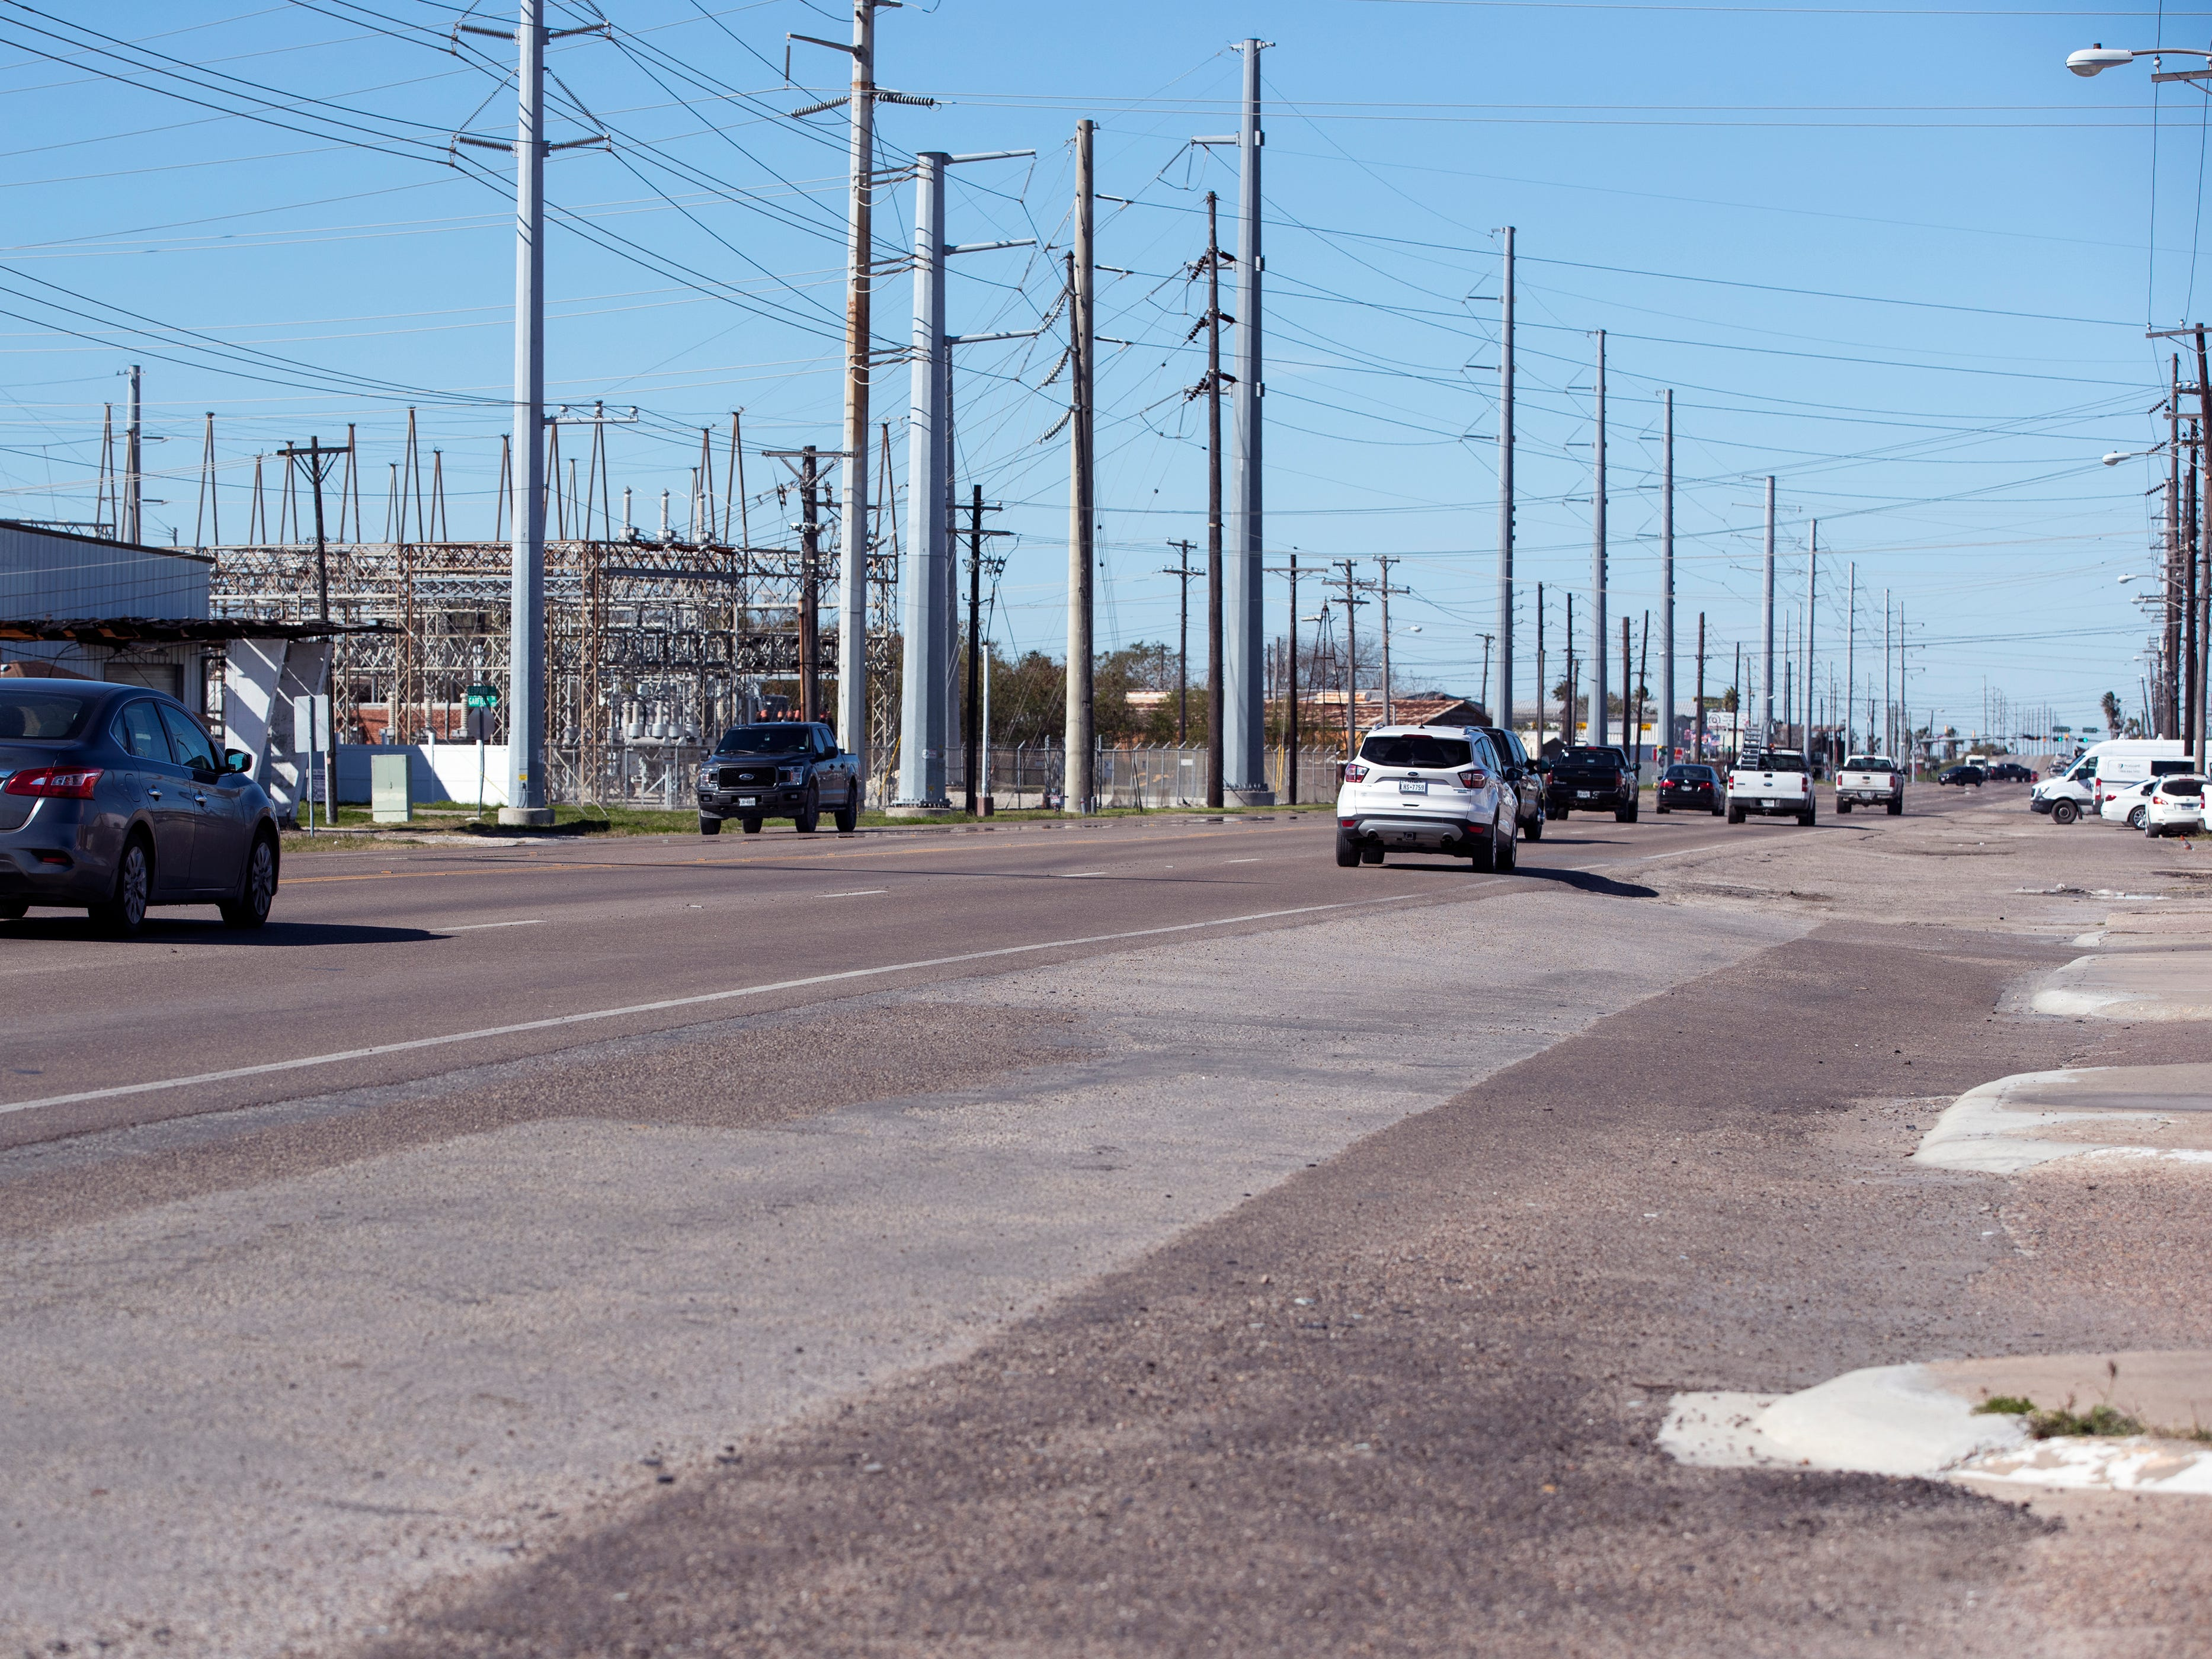 Statistics from the Corpus Christi Police Department show that a high number of auto-pedestrian accidents take place in the 4500 block of Leopard Street. Drivers can be seen on the street on Tuesday, January 29, 2019.